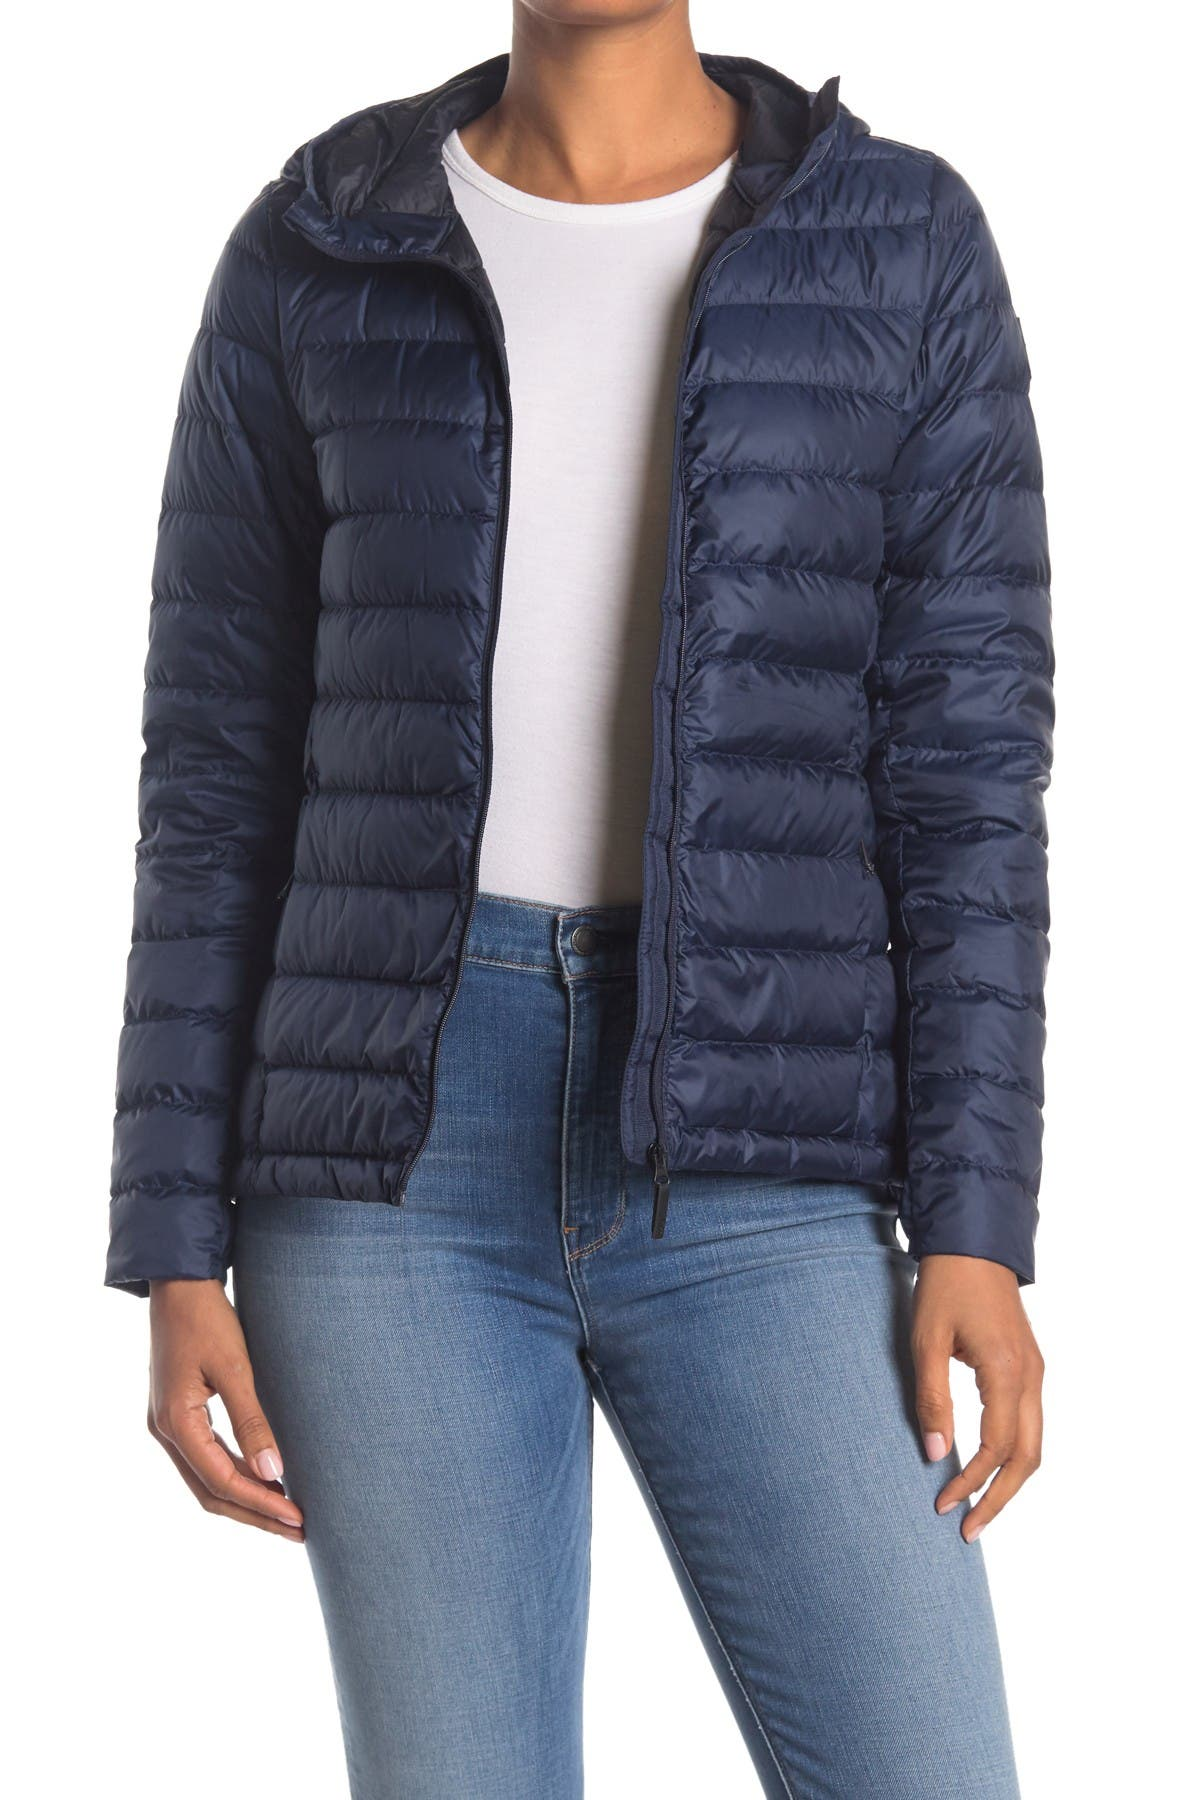 Image of Lole Emeline Hooded Down Puffer Jacket